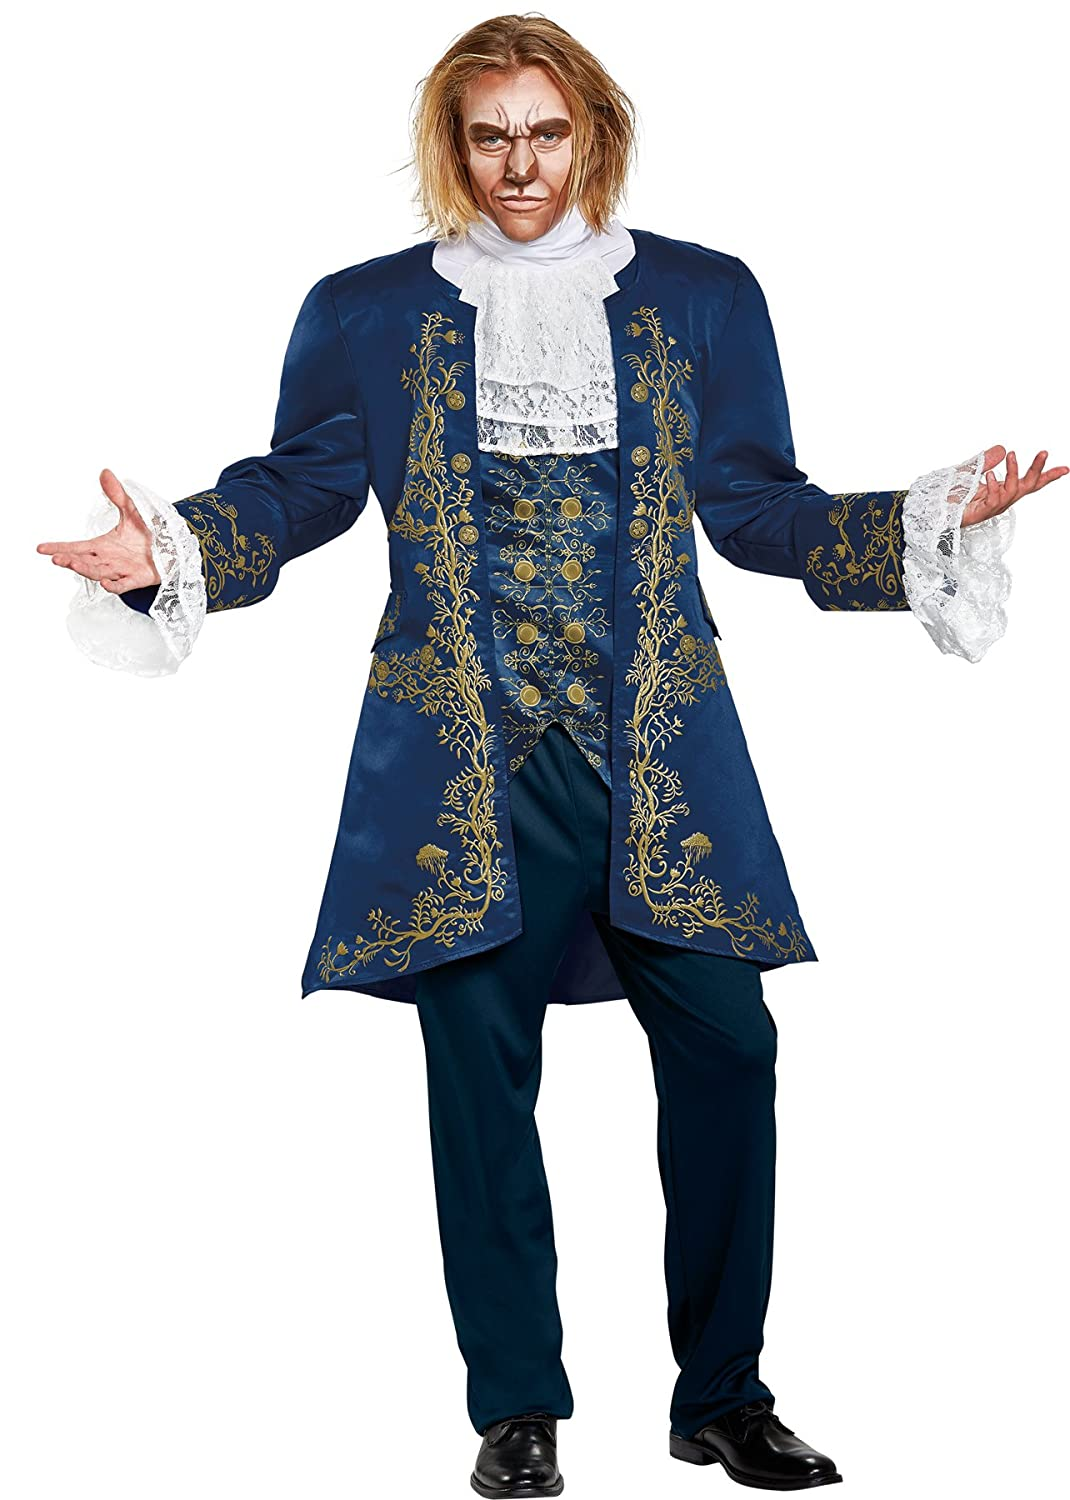 Menu0027s Disney Prestige Beast Movie Theme Costume One Size - DeluxeAdultCostumes.com  sc 1 st  Deluxe Theatrical Quality Adult Costumes & Deluxe Beauty and the Beast Costumes | Deluxe Theatrical Quality ...